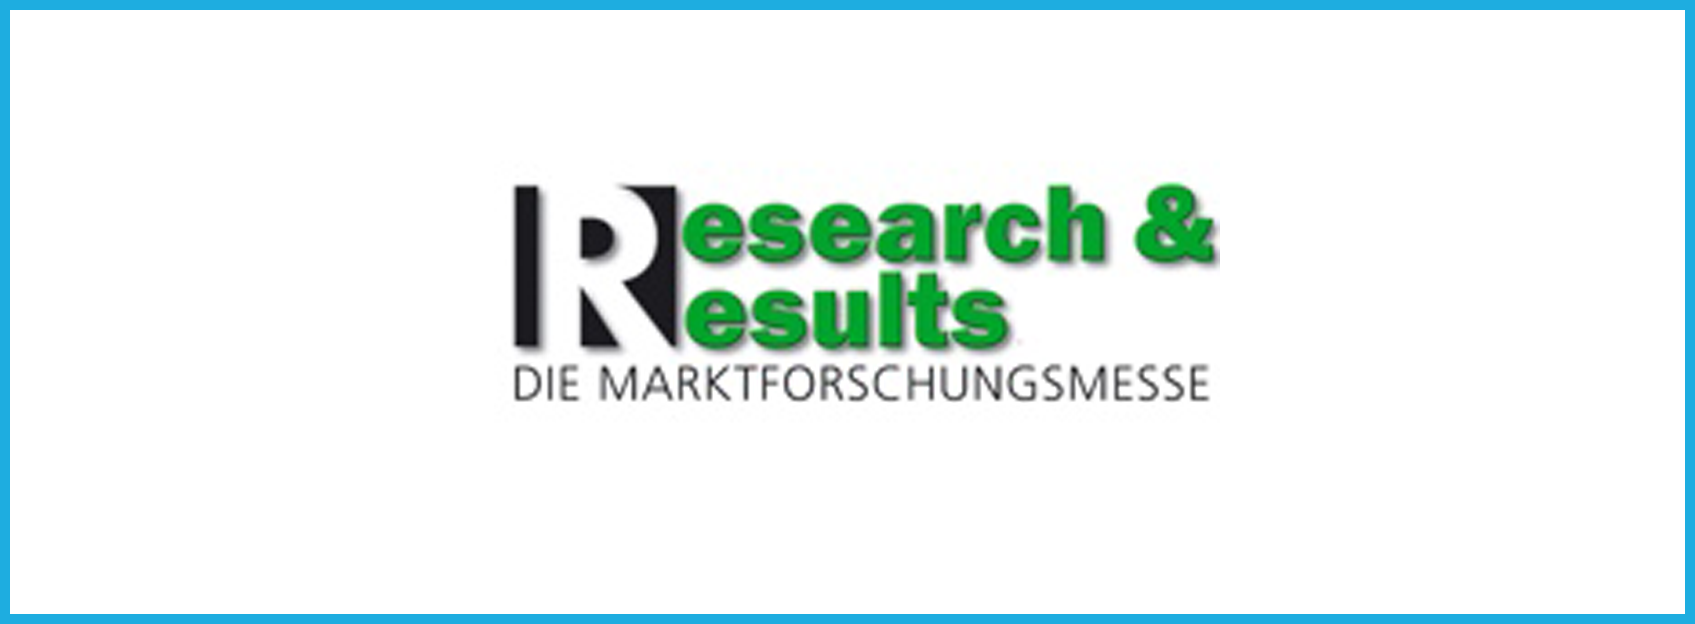 Research & Results 2007 – die Marktforschungsmesse